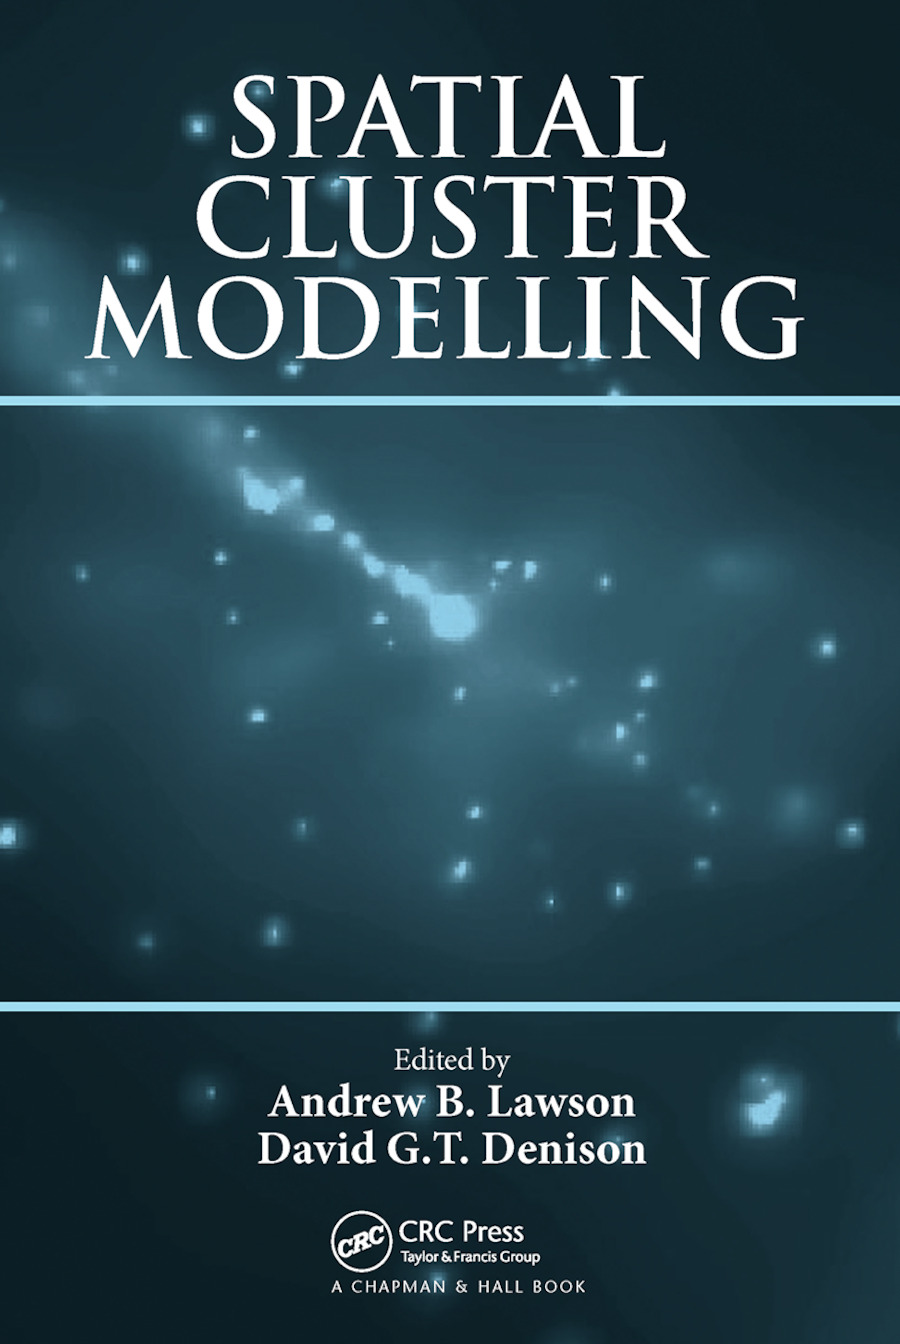 Spatial Cluster Modelling